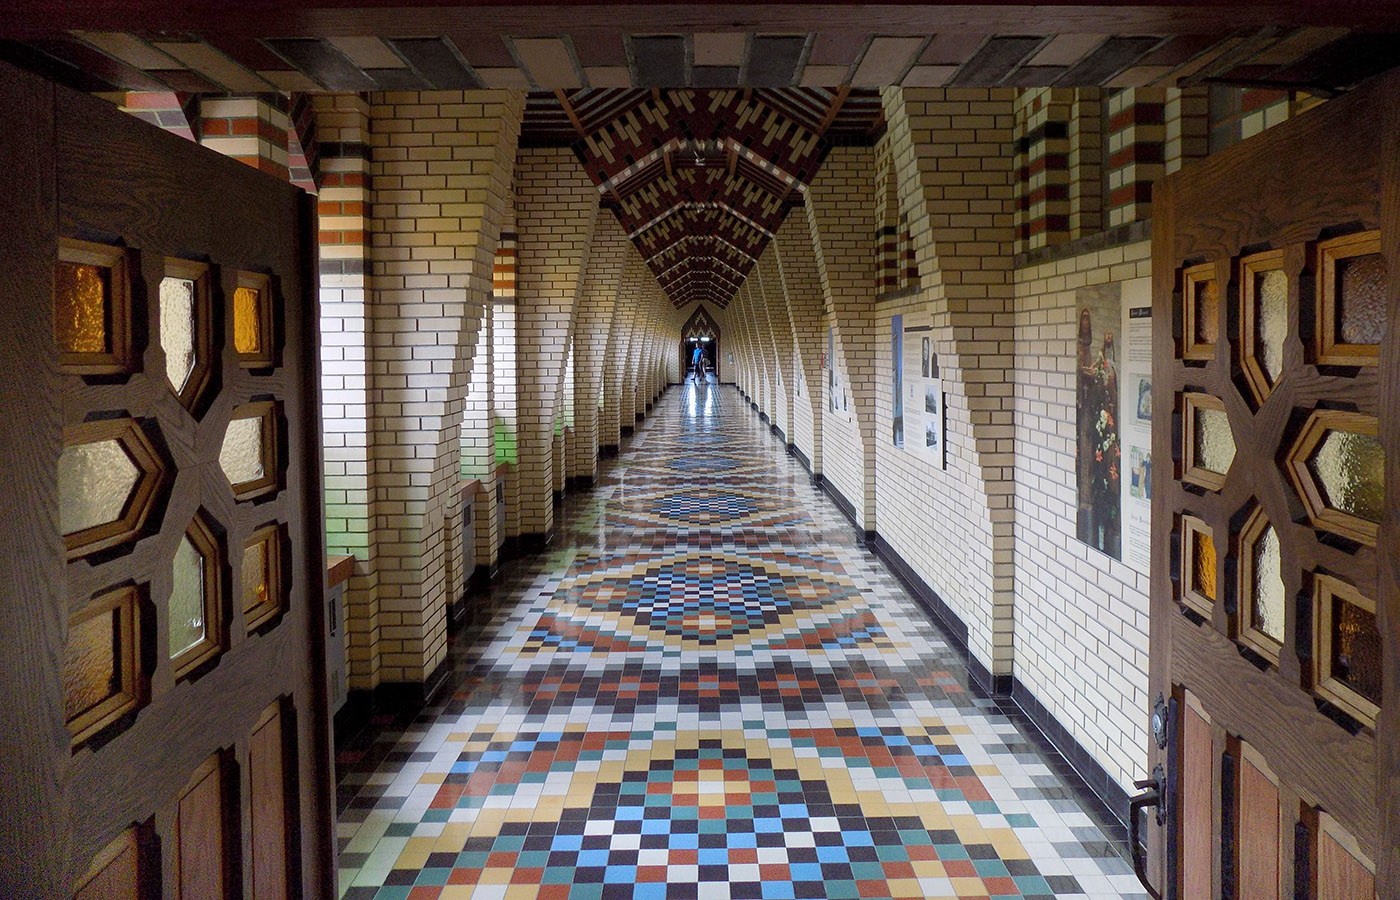 The abbey's main corridor features patterns of brick and tile. Photo: James Morgan